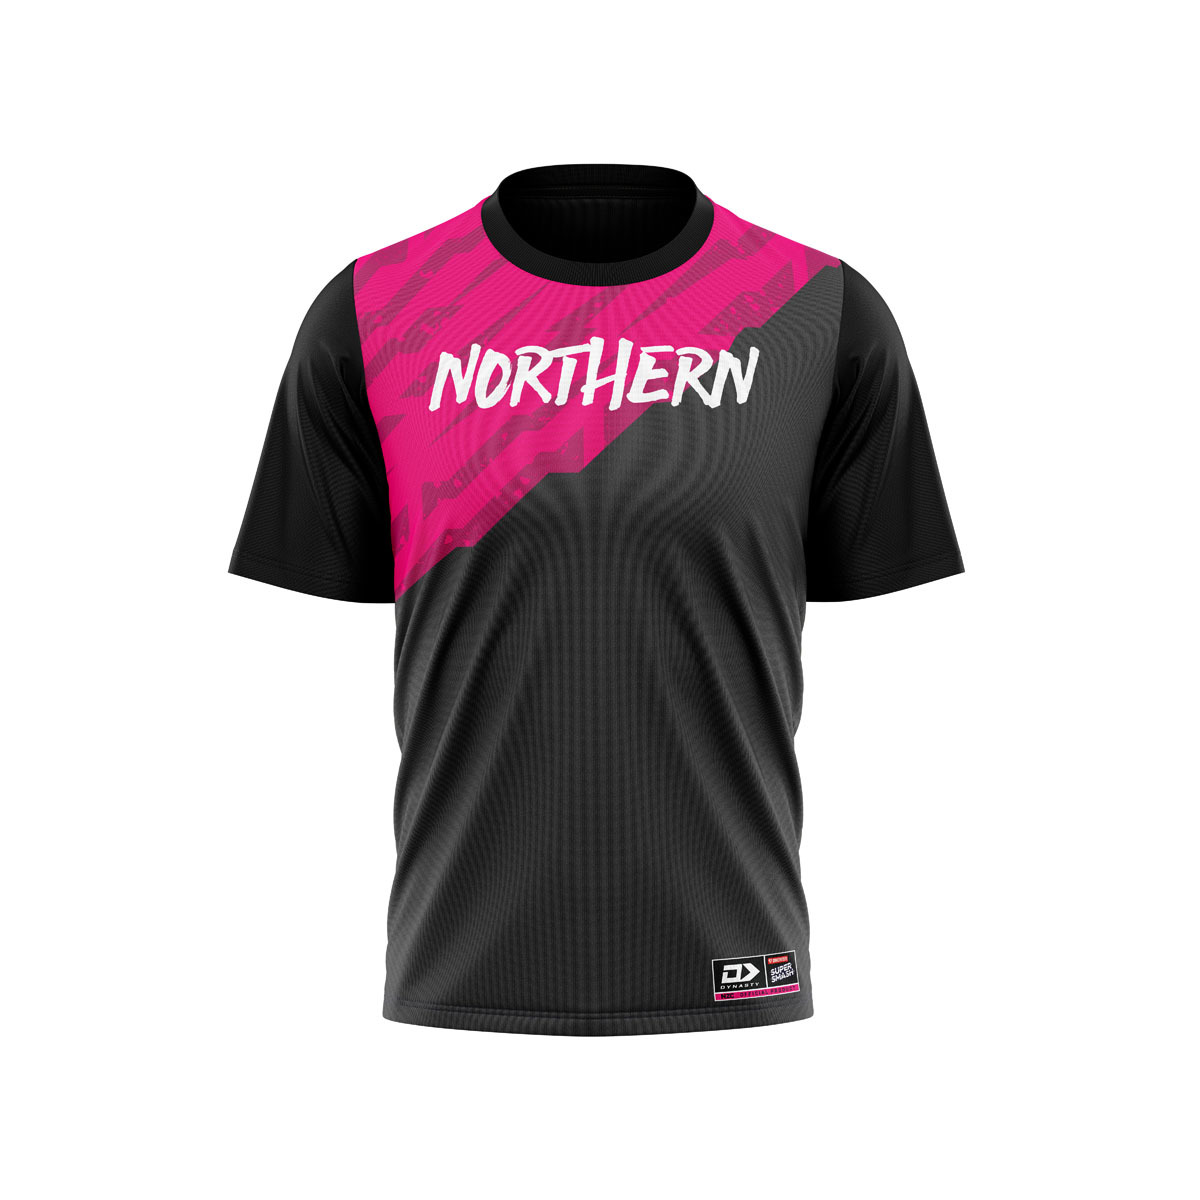 Northern Knights Youth Performance Tee (8YR) image